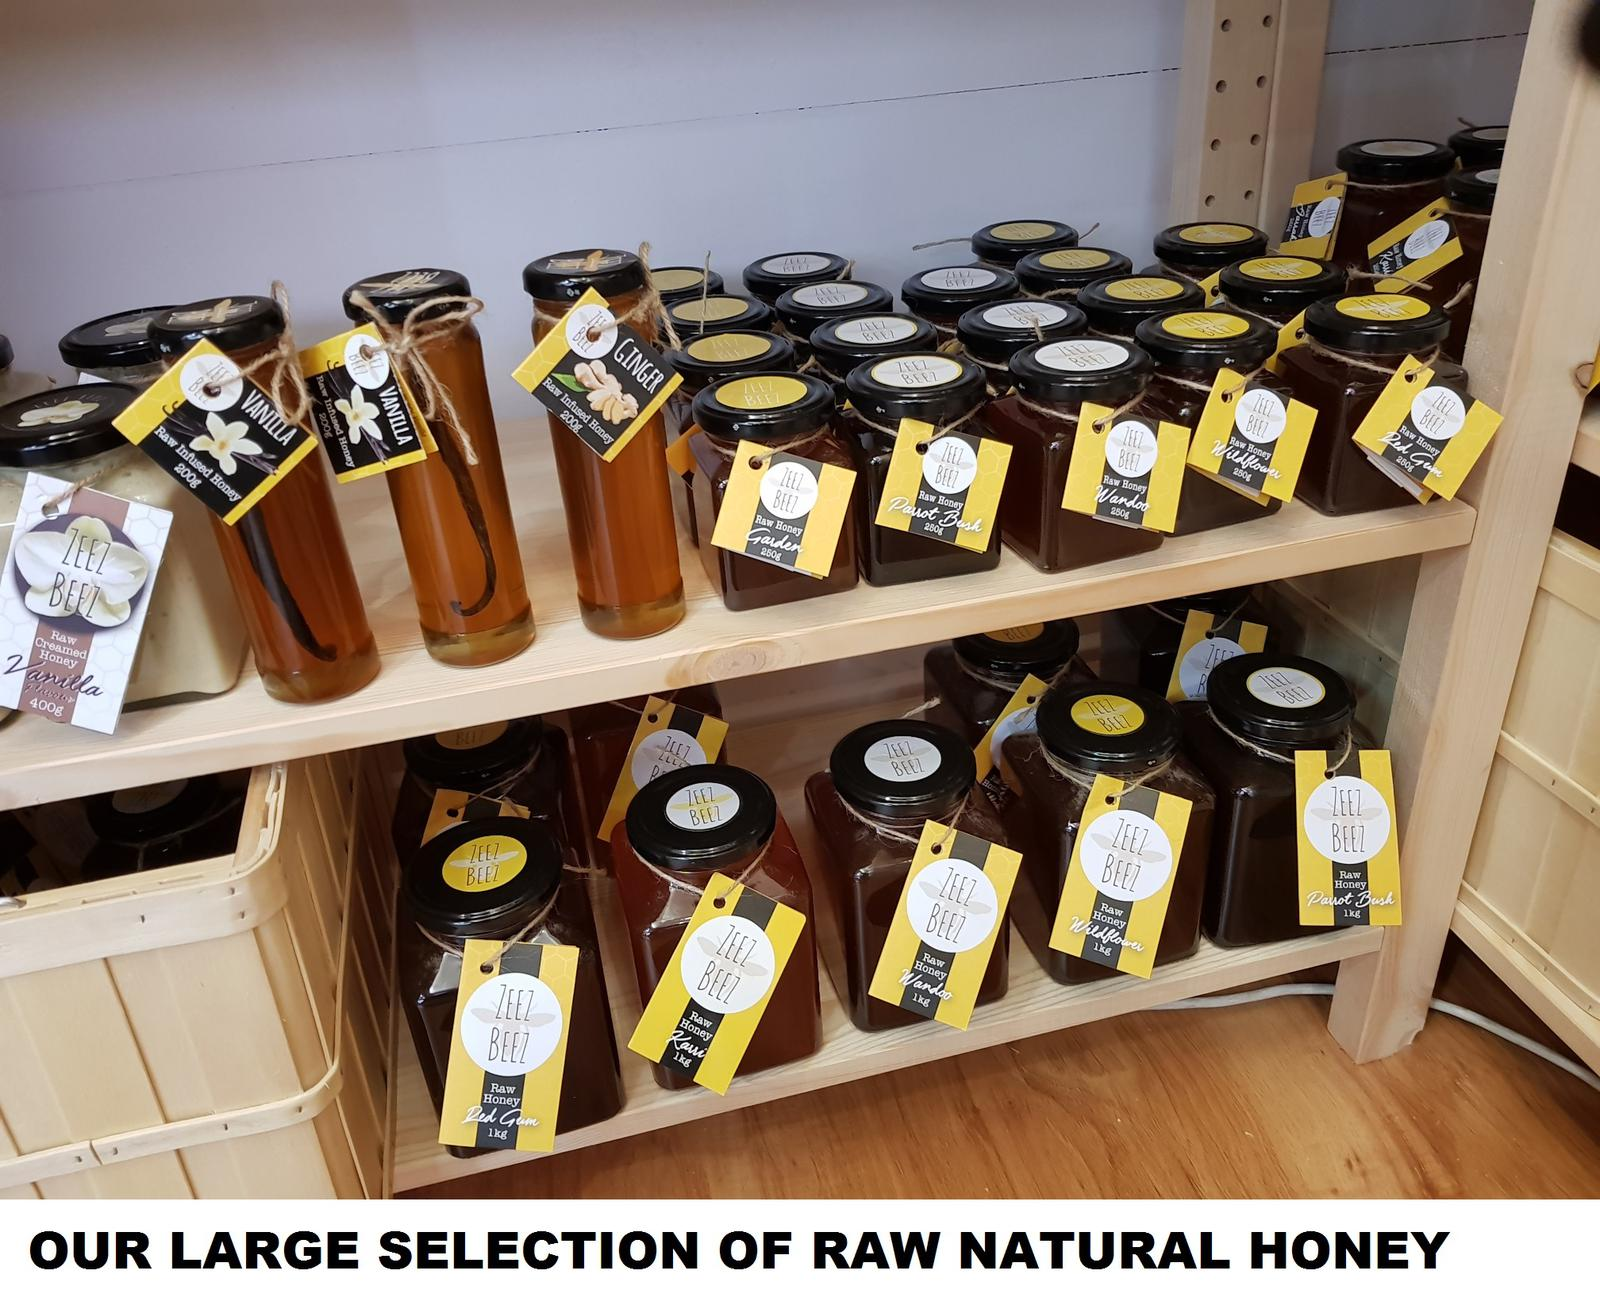 OUR NATURAL RAW HONEY SELECTION